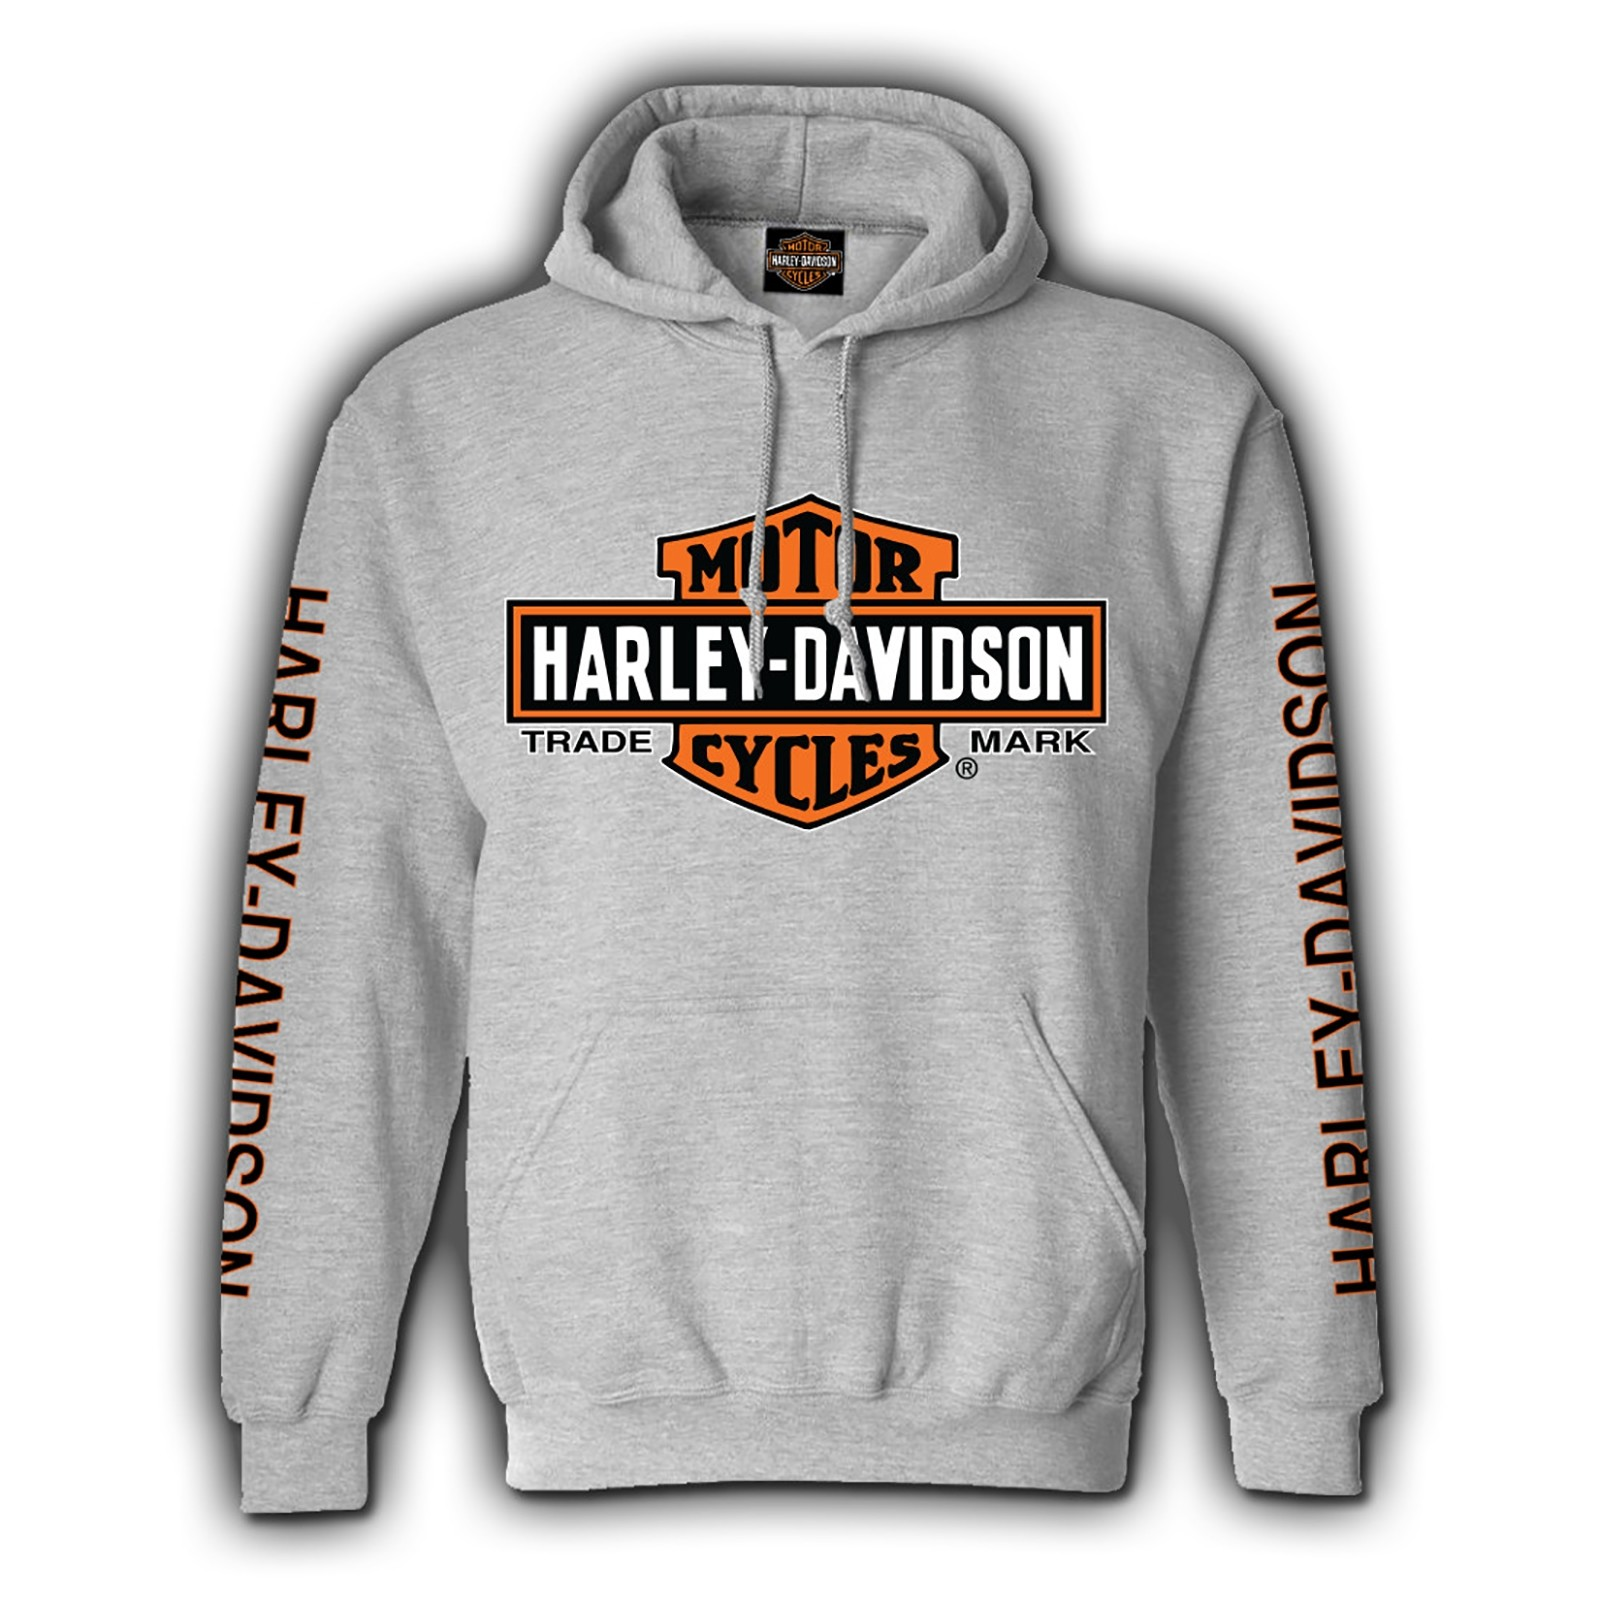 Harley-Davidson Military Bar & Shield Pullover Sweatshirt - Eagle Custom Overseas Tour